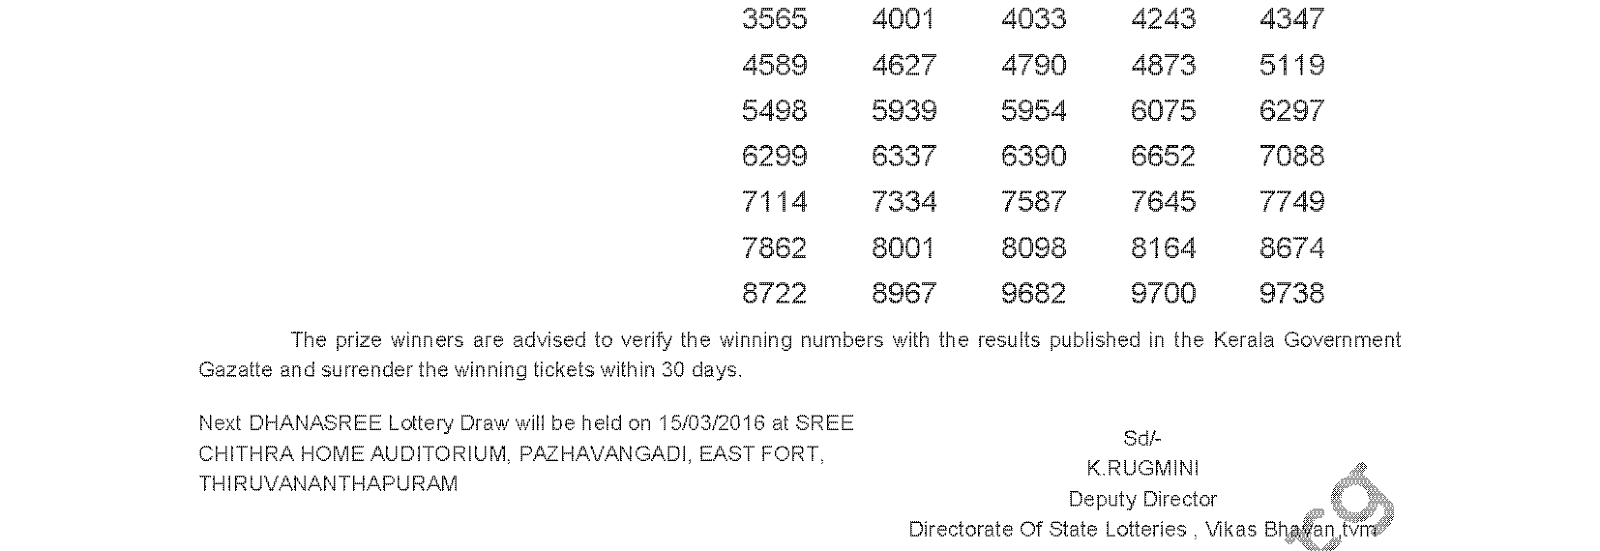 DHANASREE Lottery DS 227 Result 08-03-2016